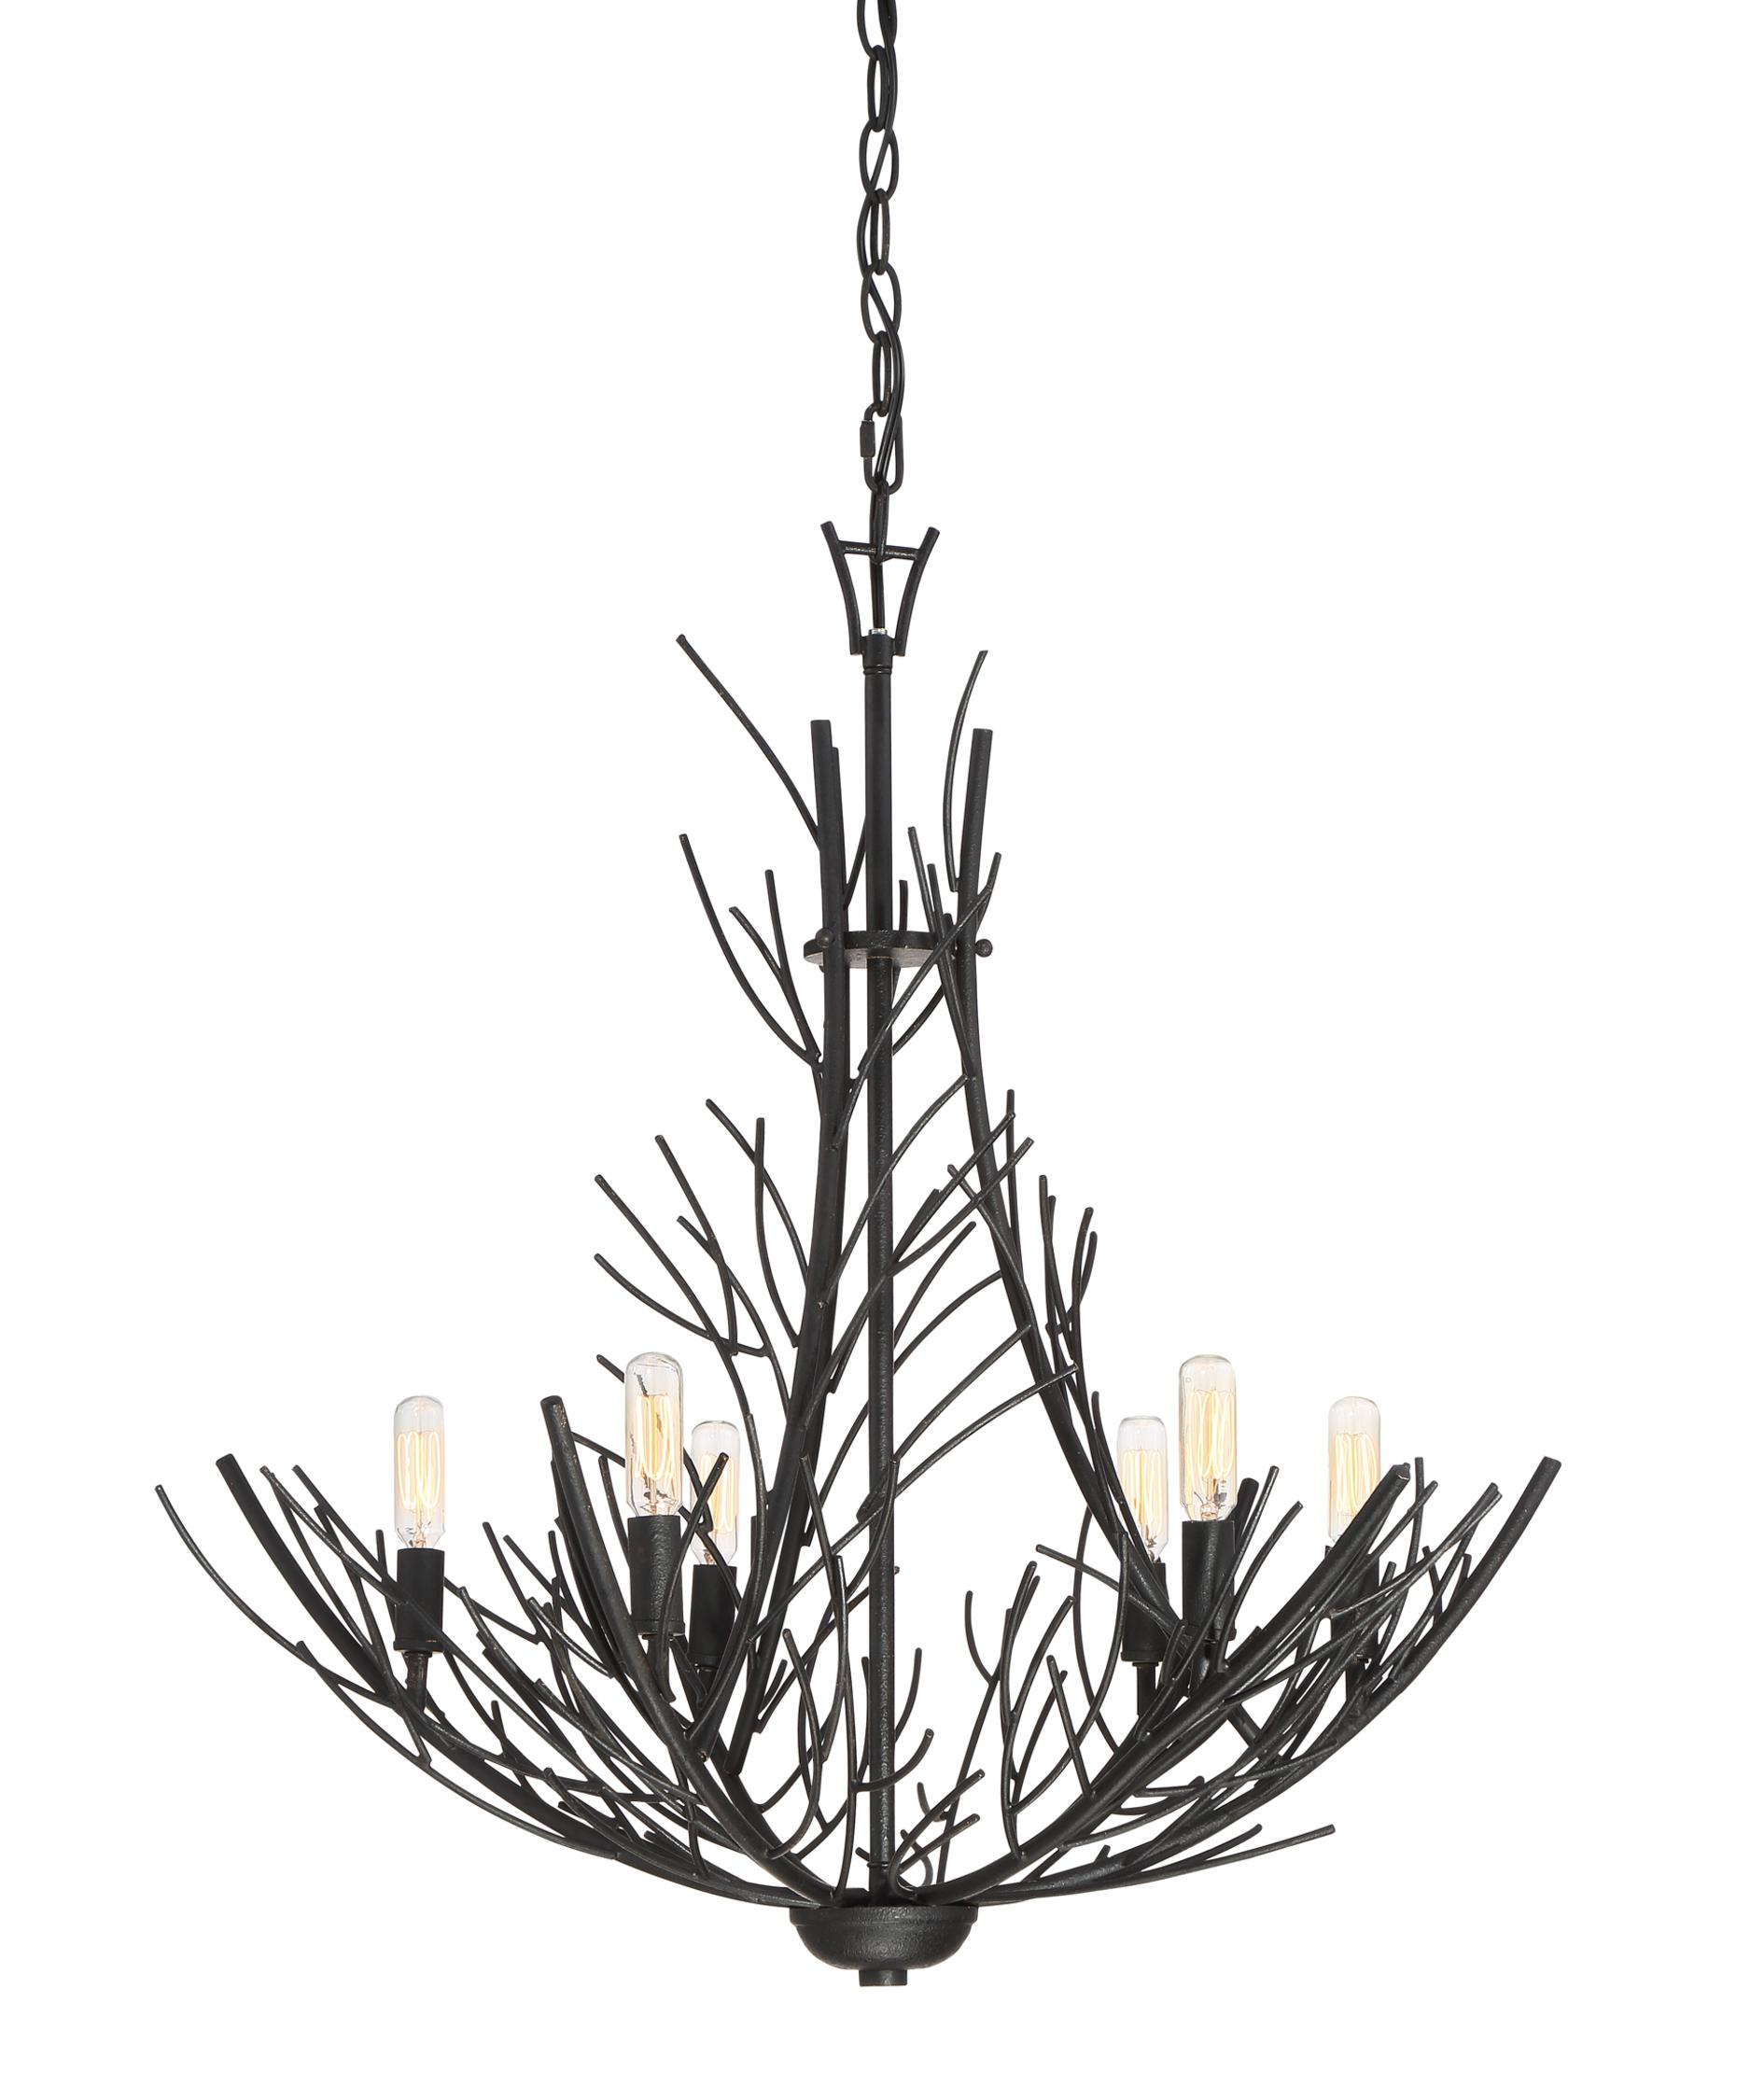 Quoizel Thornhill 26 Inch Wide 6 Light Chandelier – Quoizel Chandelier